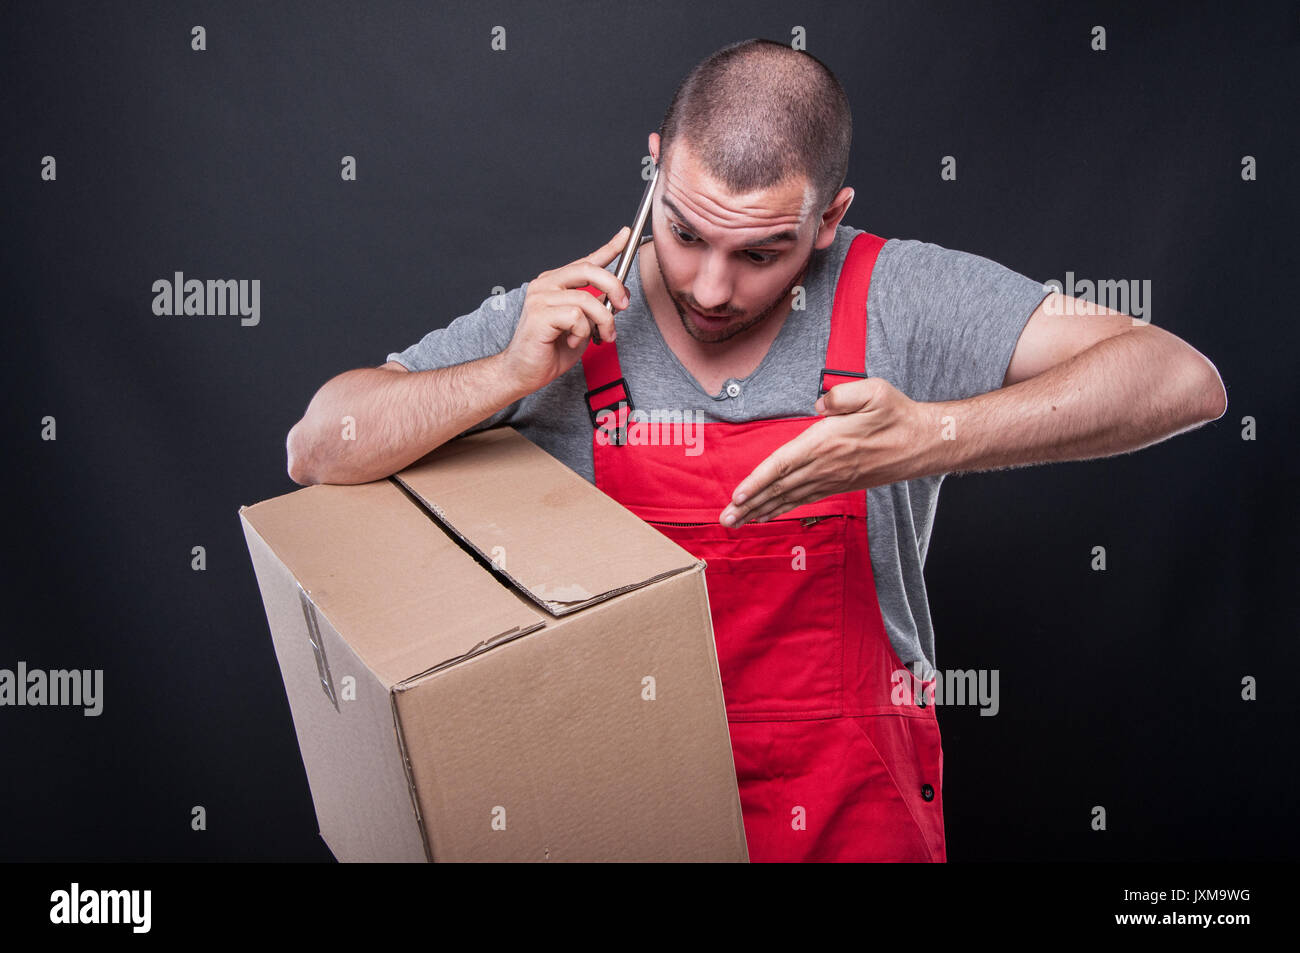 Mover man holding box giving explanation o phone on black background with copy space text - Stock Image